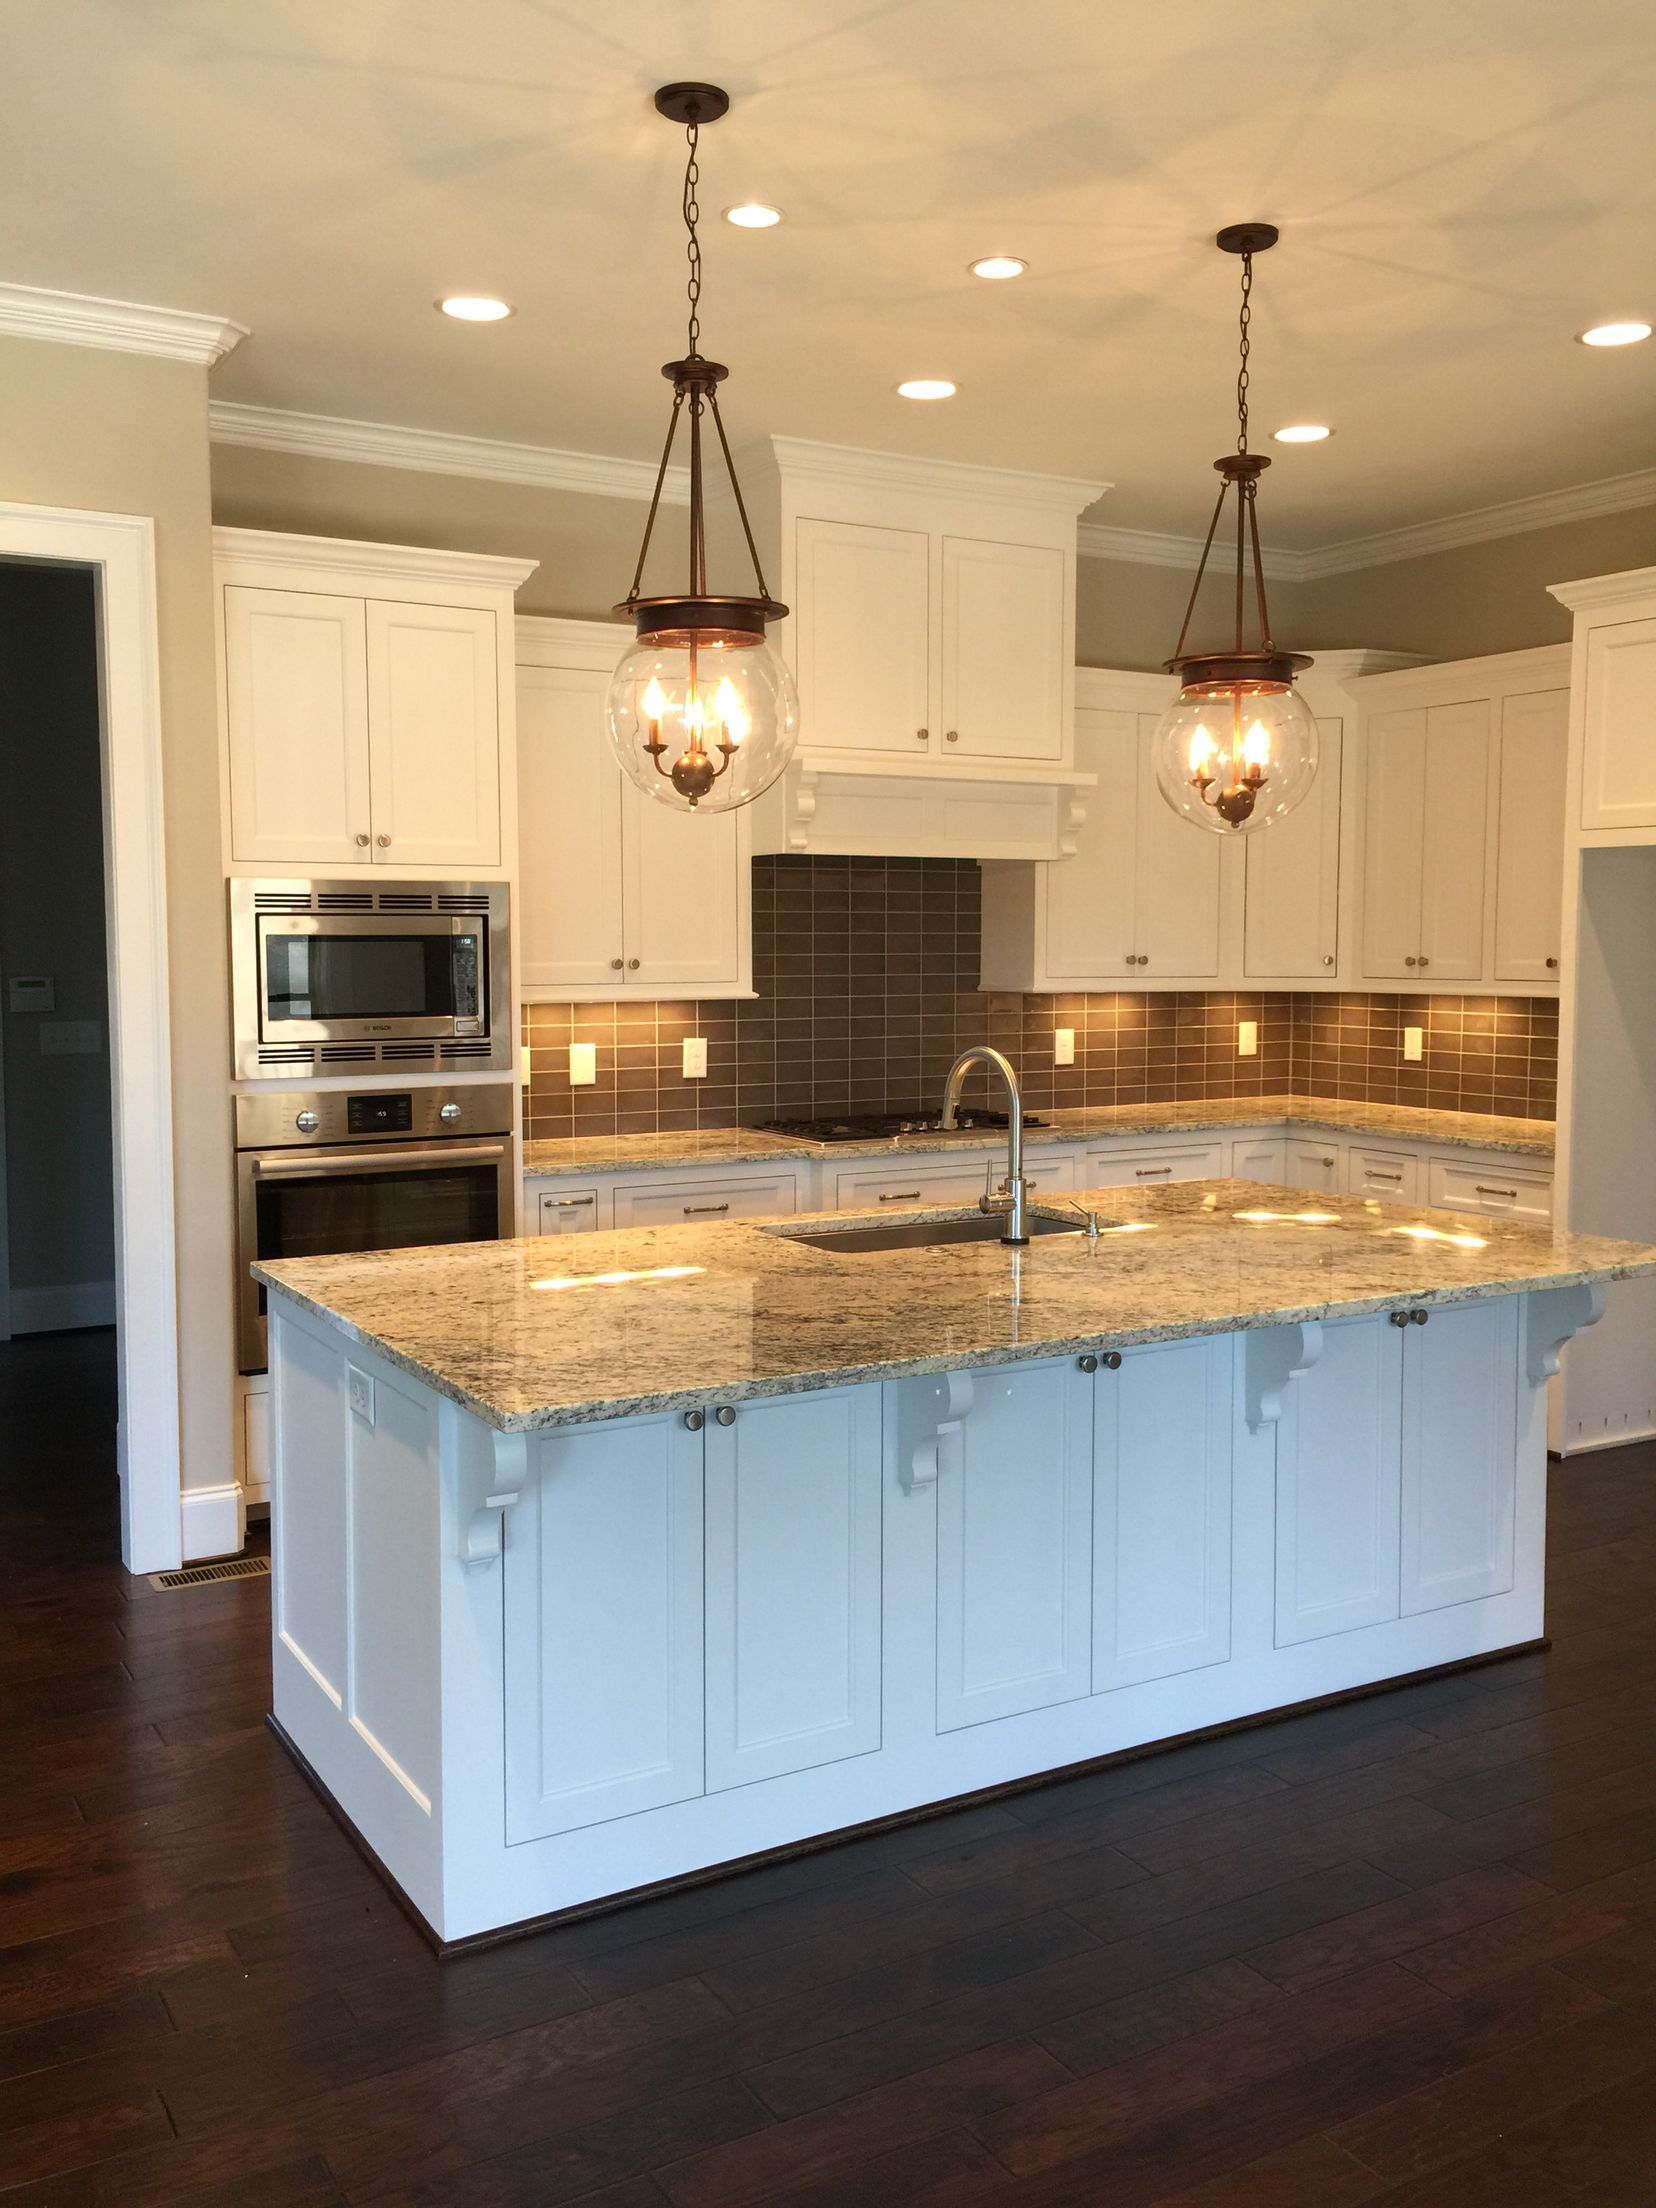 Sherwin williams pure white cabinets worldly gray walls White cabinets grey walls